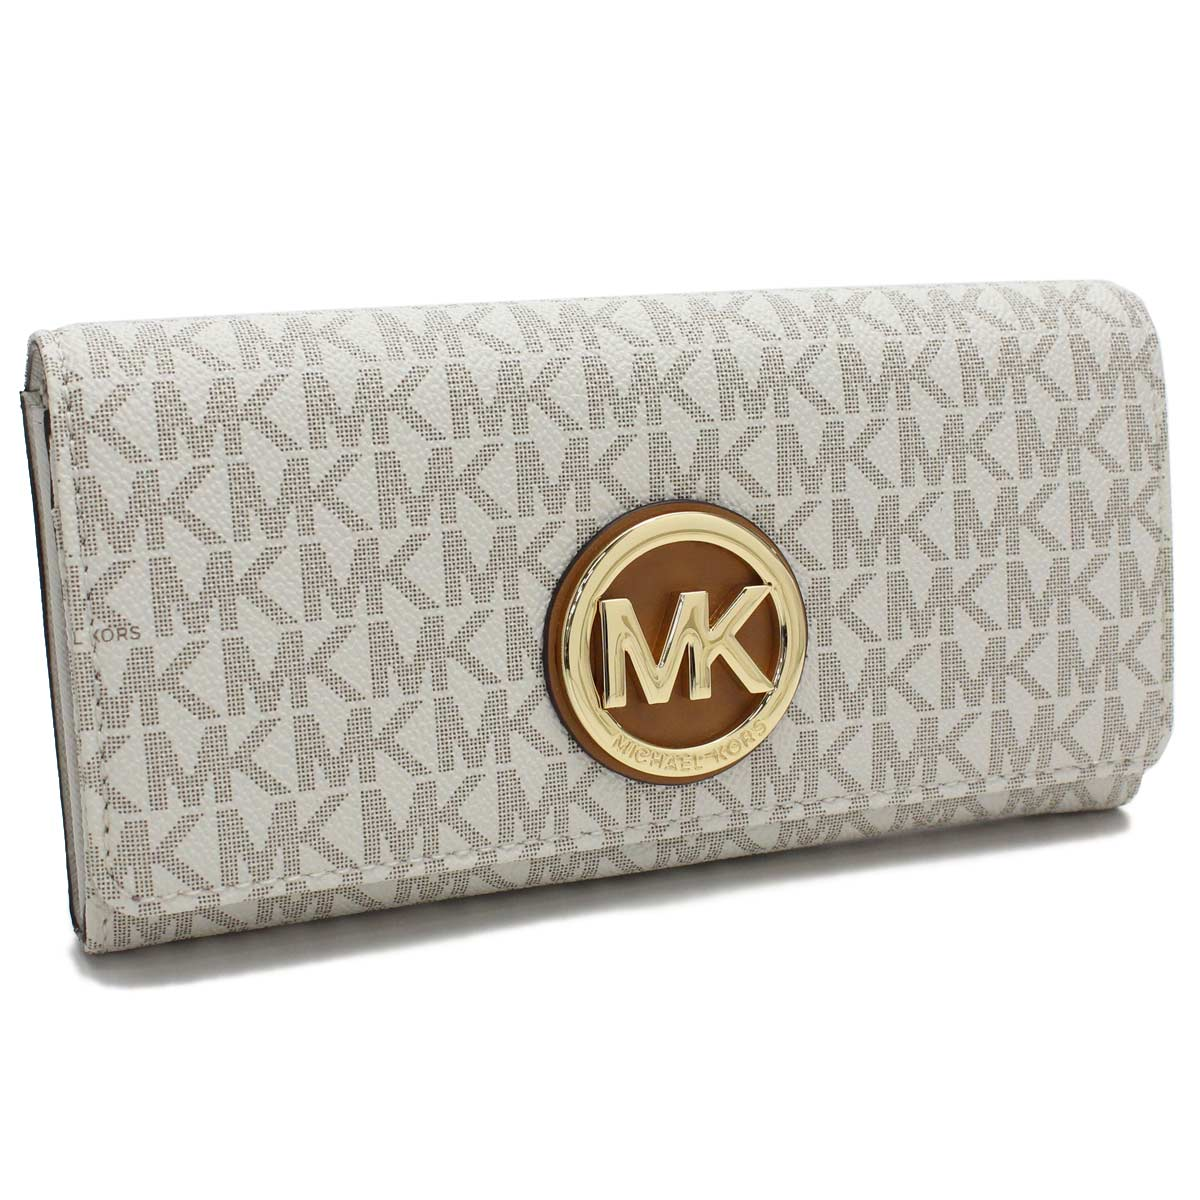 c13c80b43f20 Bighit The total brand wholesale: 32S7GFTE3B VANILLA white system with the Michael  Kors MICHAEL KORS wallet FULTON folio long wallet small change case ...